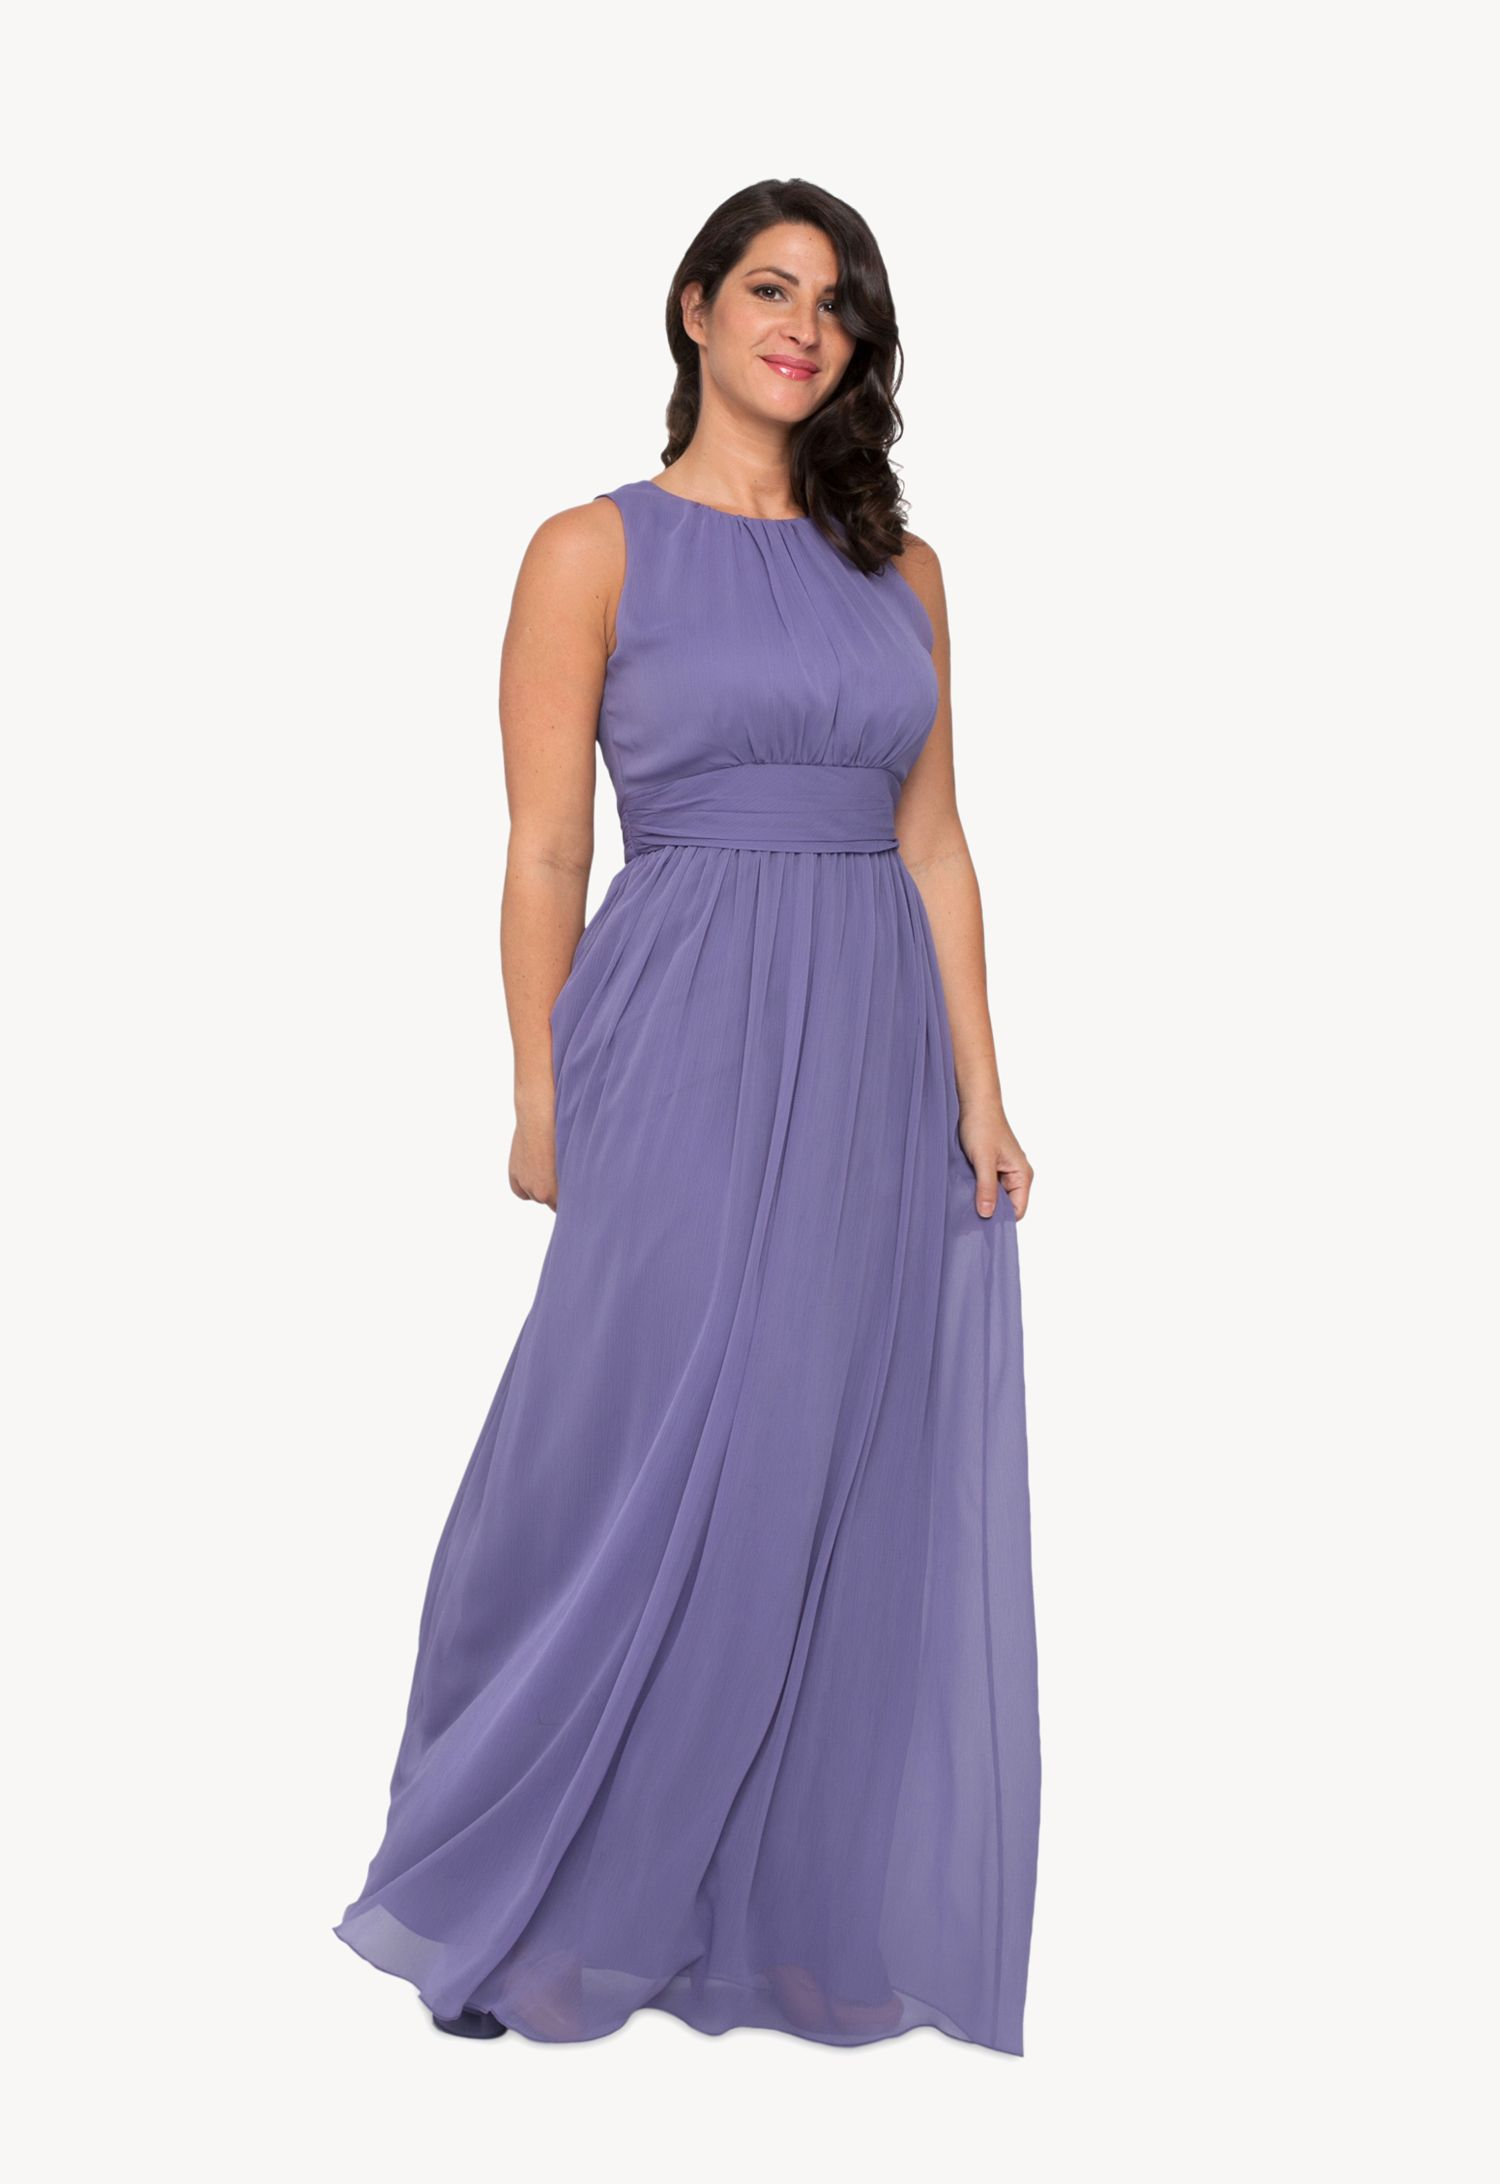 New for 2014 - the Olivia dress, a classically chic #bridesmaid ...